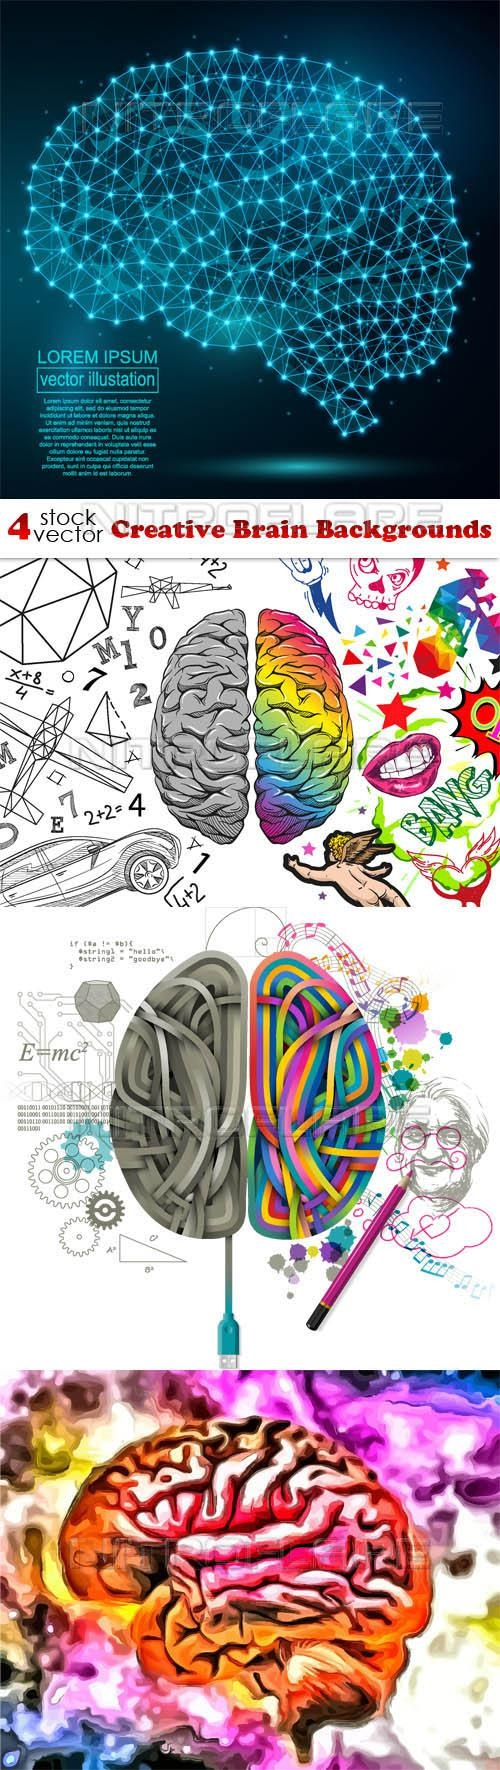 Creative Brain Backgrounds ((aitff (8 files)